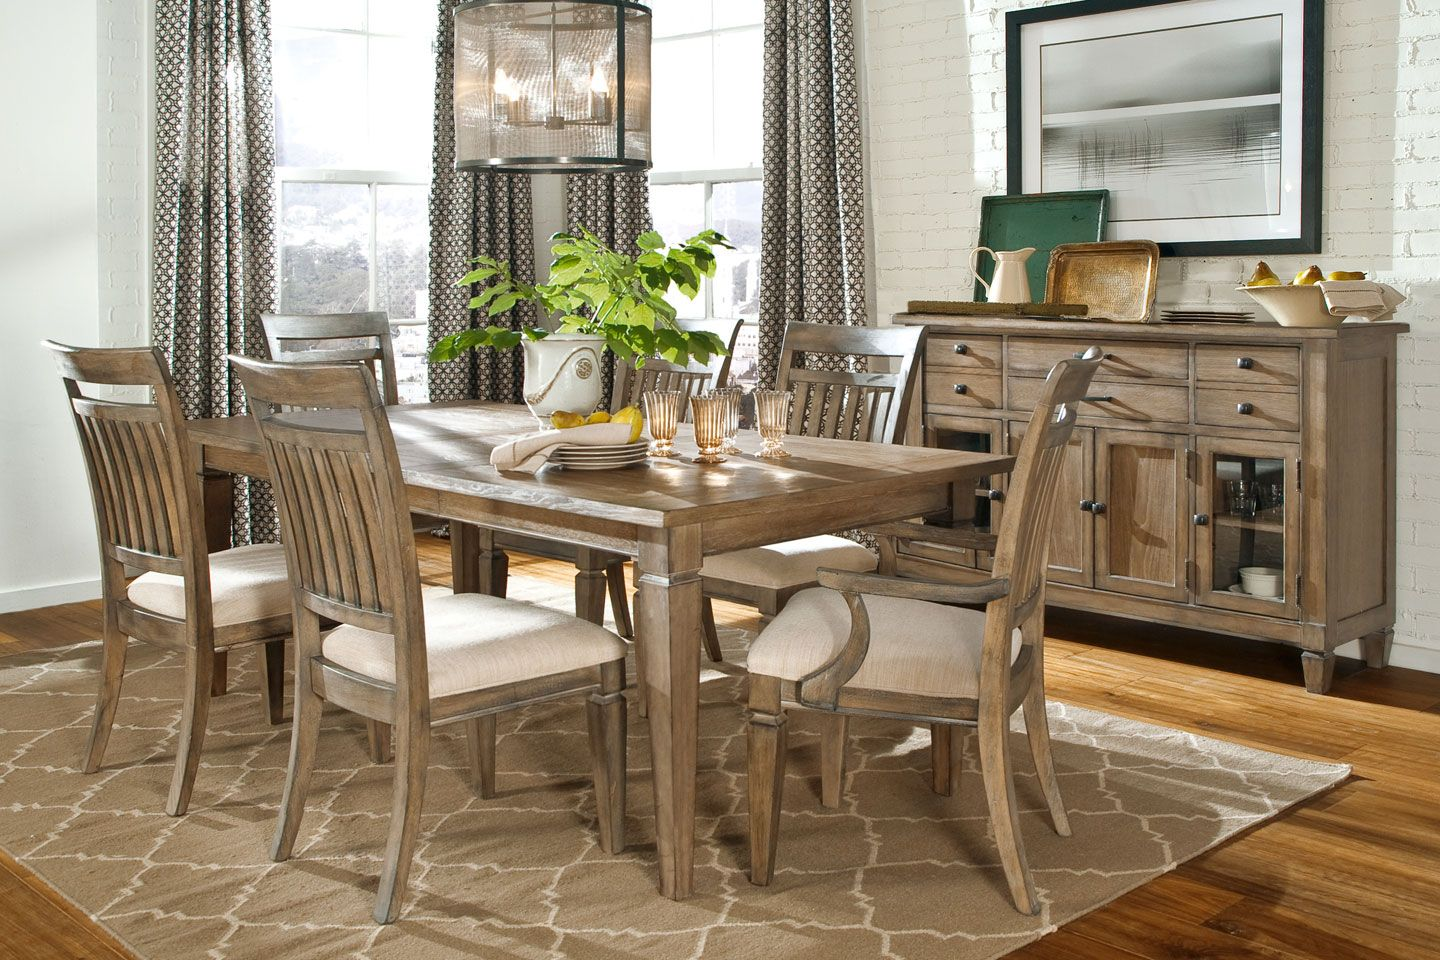 Gavin rustic formal dining room set fine dining furniture